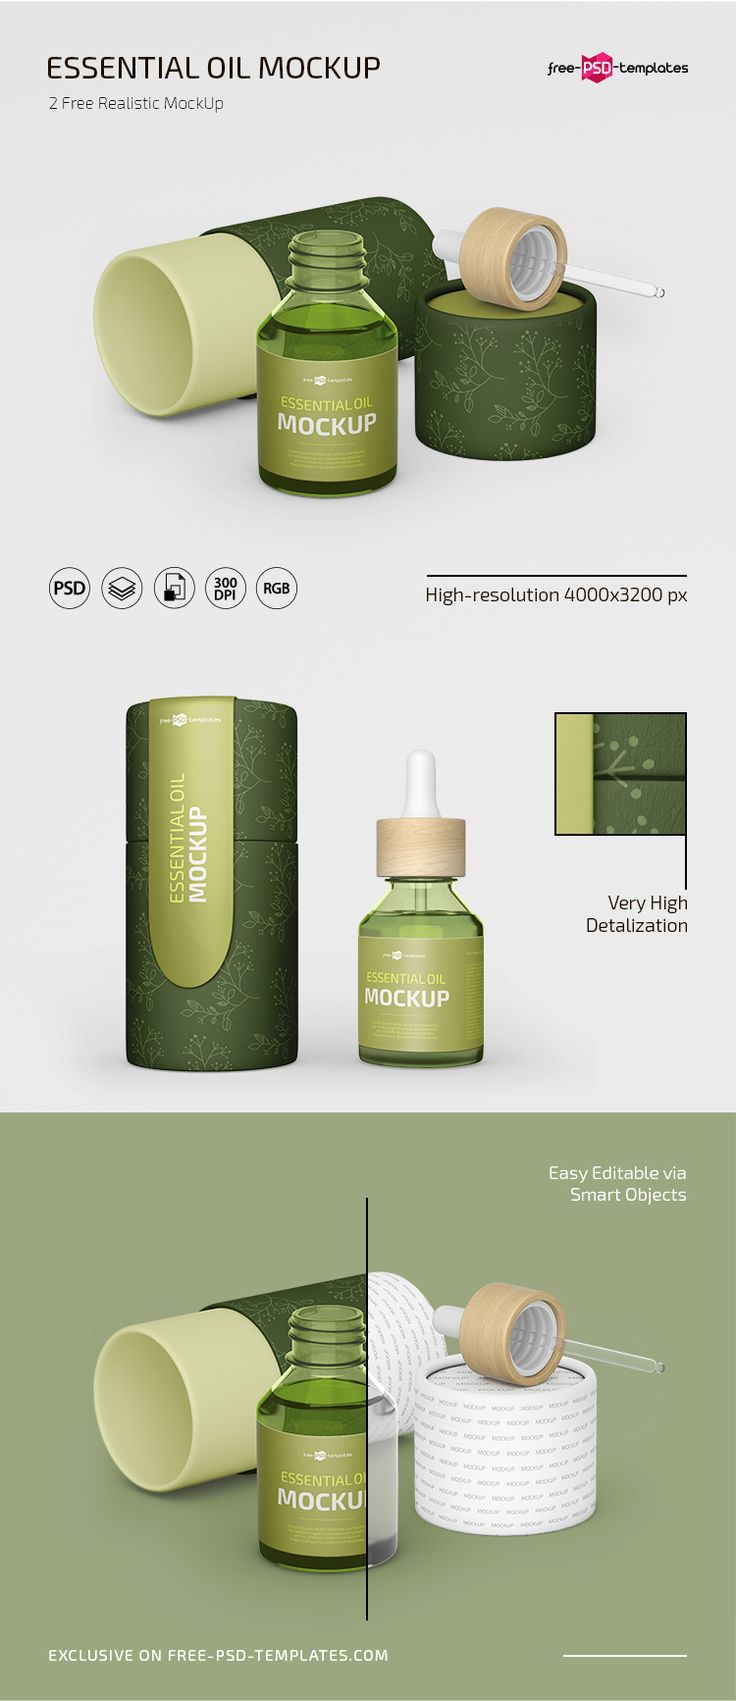 Download Free PSD Essential Oil Mockup Template | Free-PSD-Templates